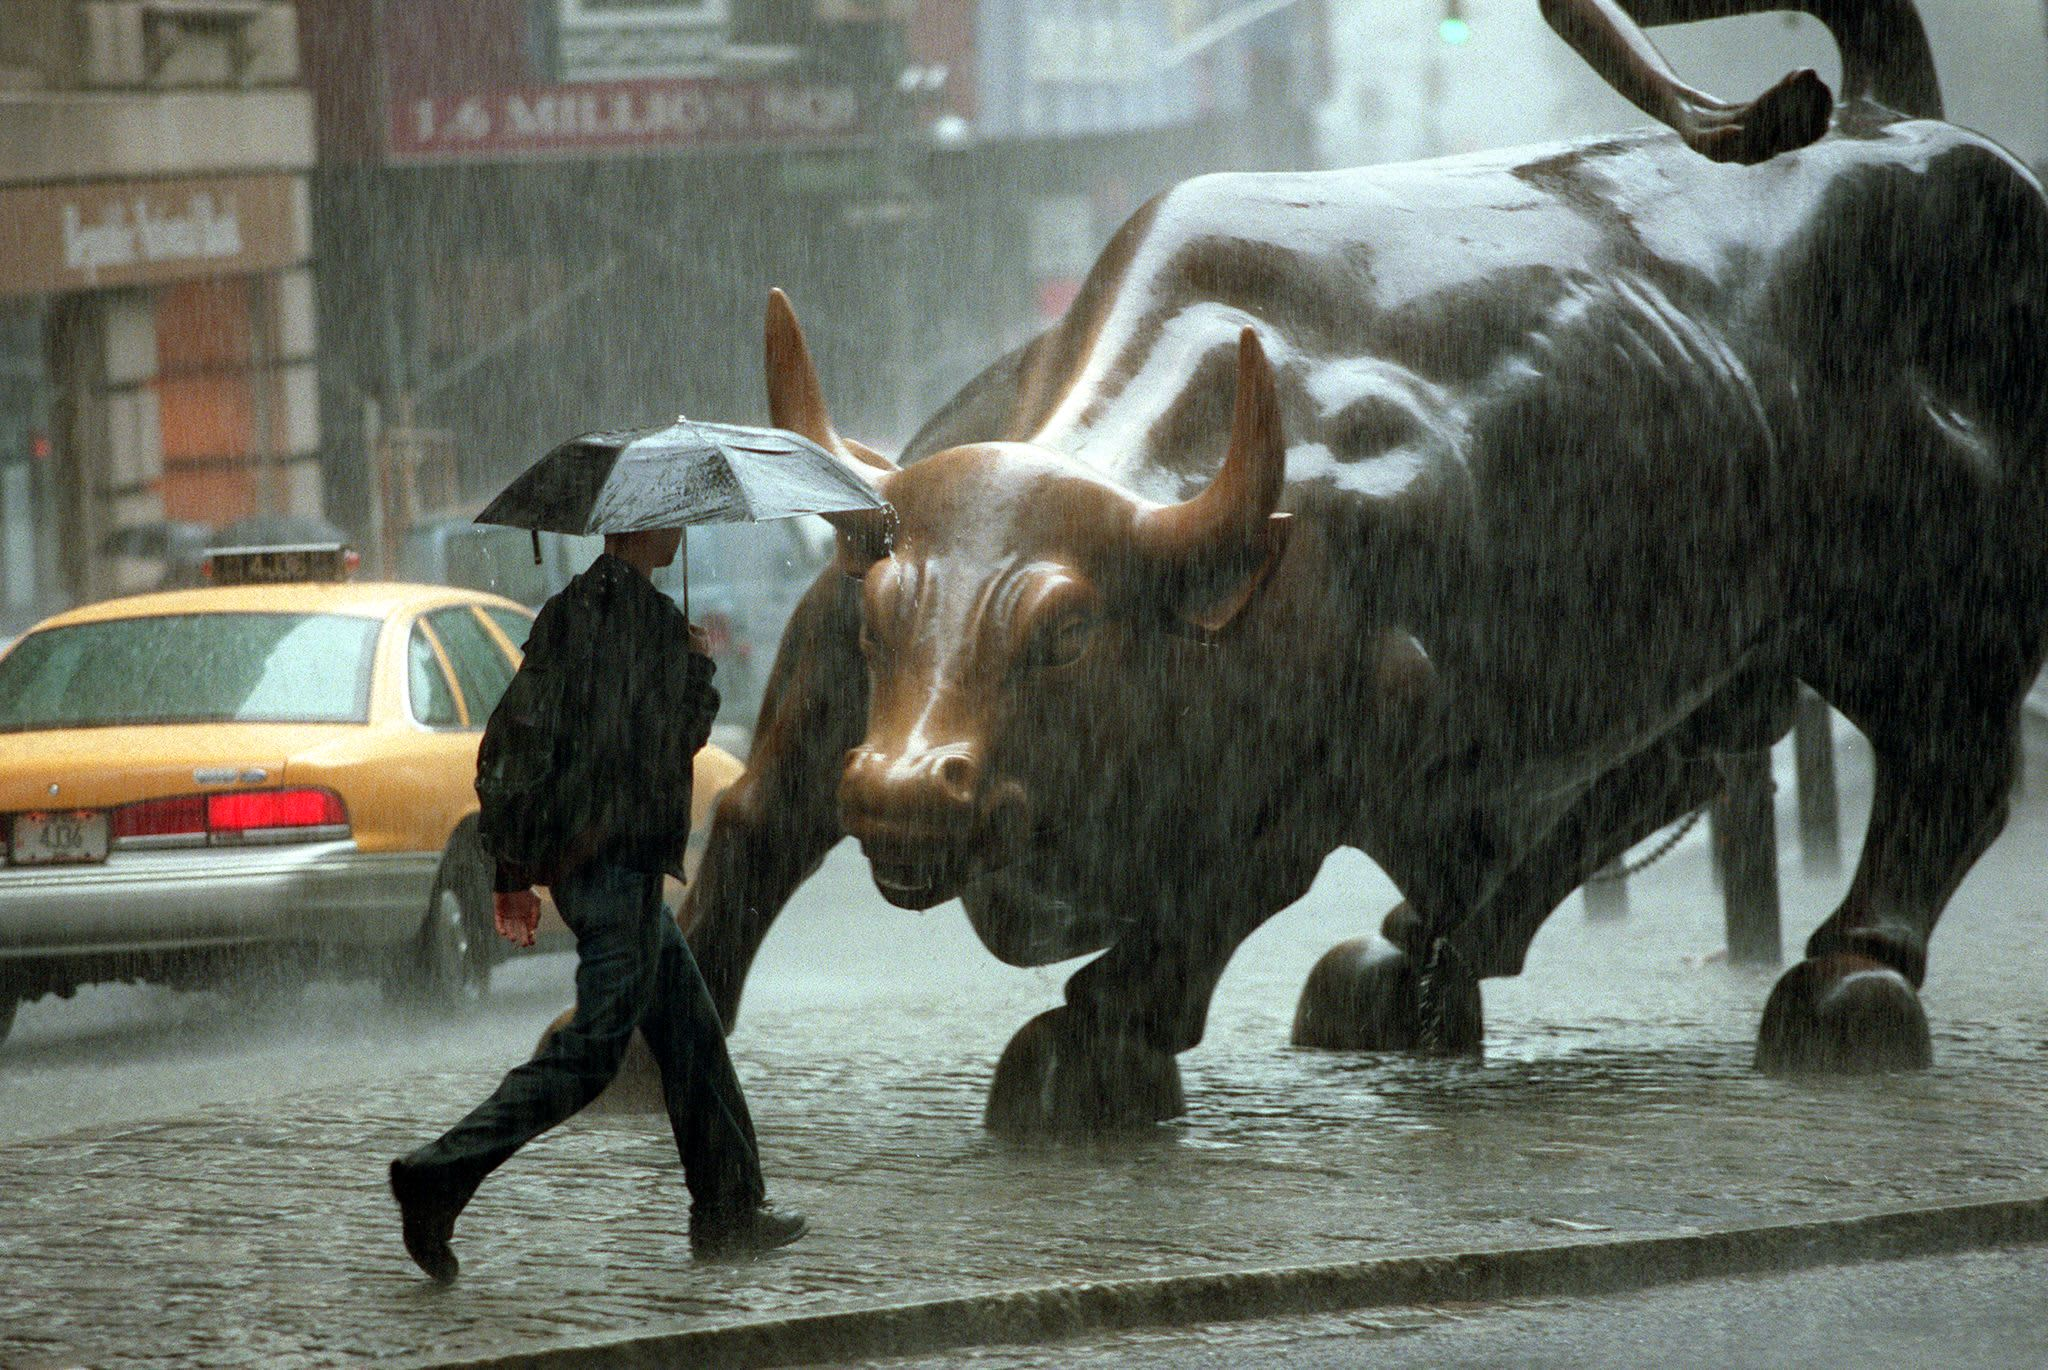 Morgan Stanley: Risk of a global recession is 'high and rising'